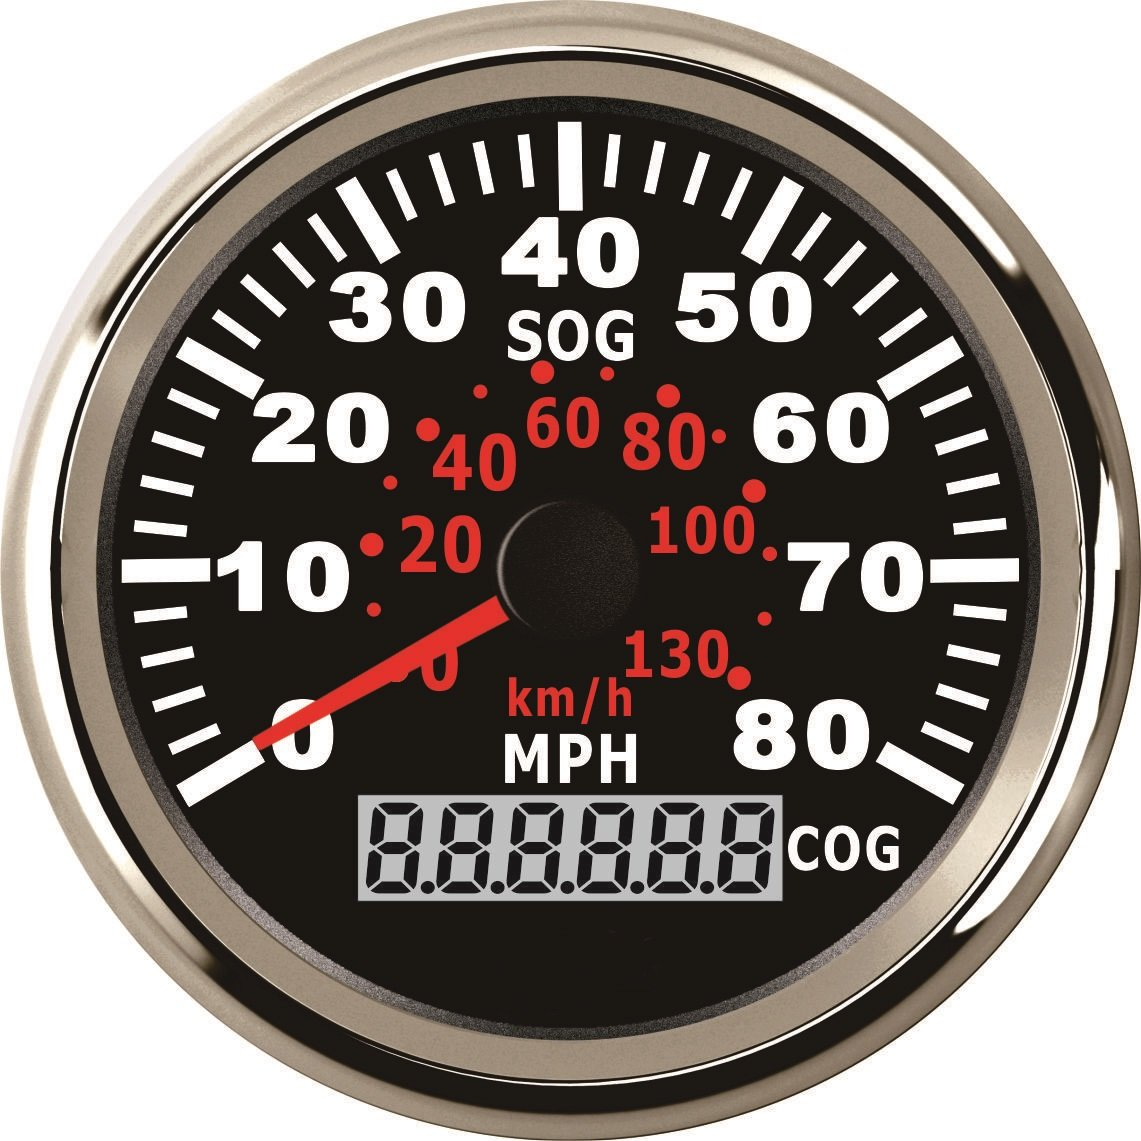 ELING Waterproof GPS Speedometer 0-80MPH Speed Gauge with Course for Marine with Backlight 3-3/8'' (85mm) 9-32V by ELING